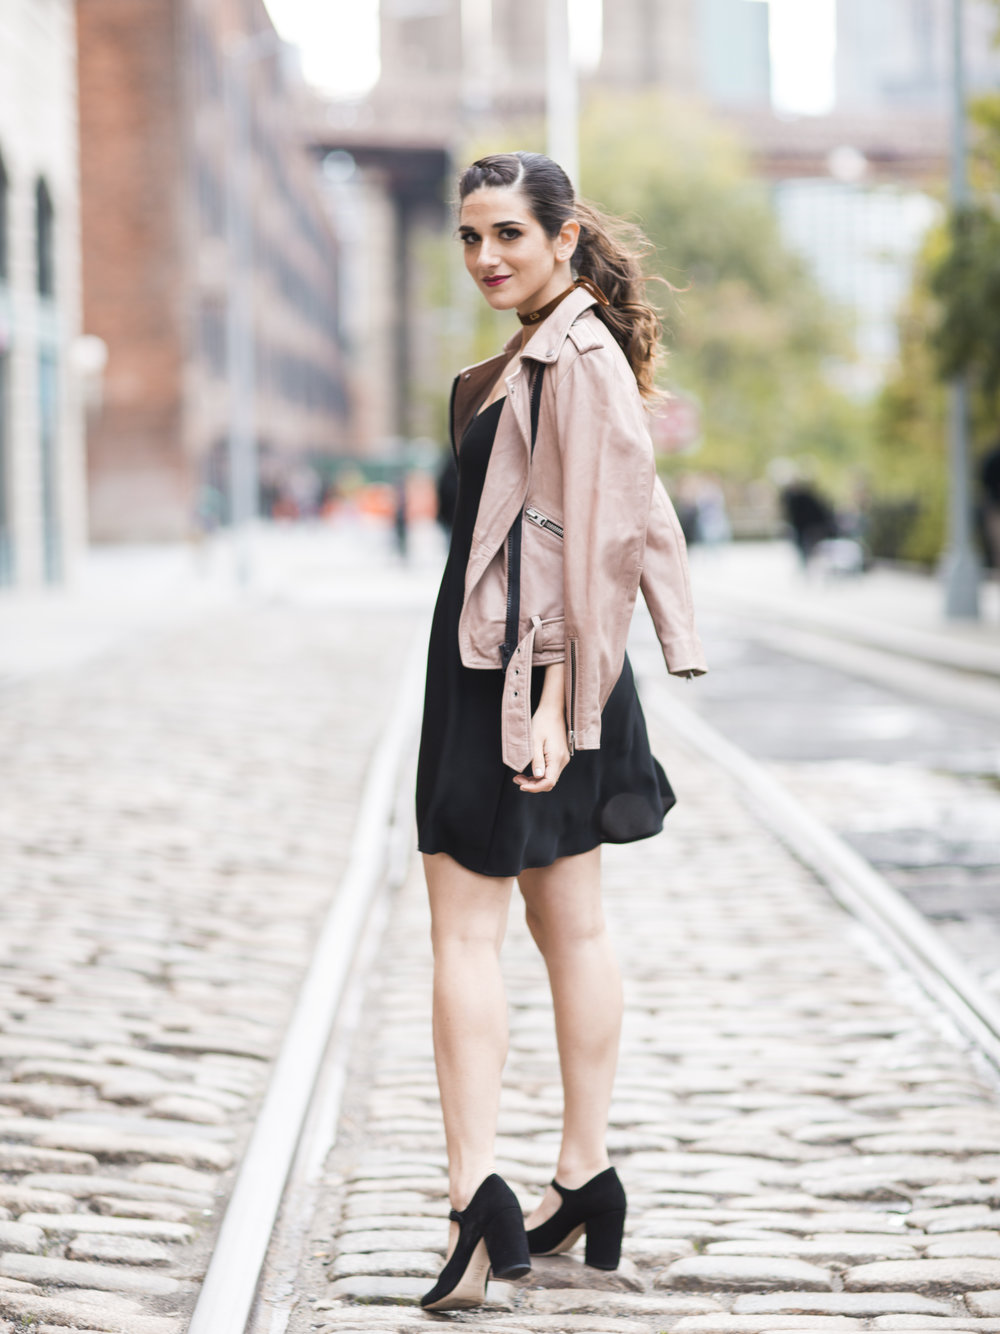 Pink Leather Jacket Erin Dana Choker Louboutins & Love Fashion Blog Esther Santer NYC Street Style Blogger Outfit OOTD Trendy All Saints Hair Inspo Fall Look Via Spiga Black Shoes Bloomingdales Slip Dress Girl Women Model Pretty Dumbo Shop Accessories.jpg